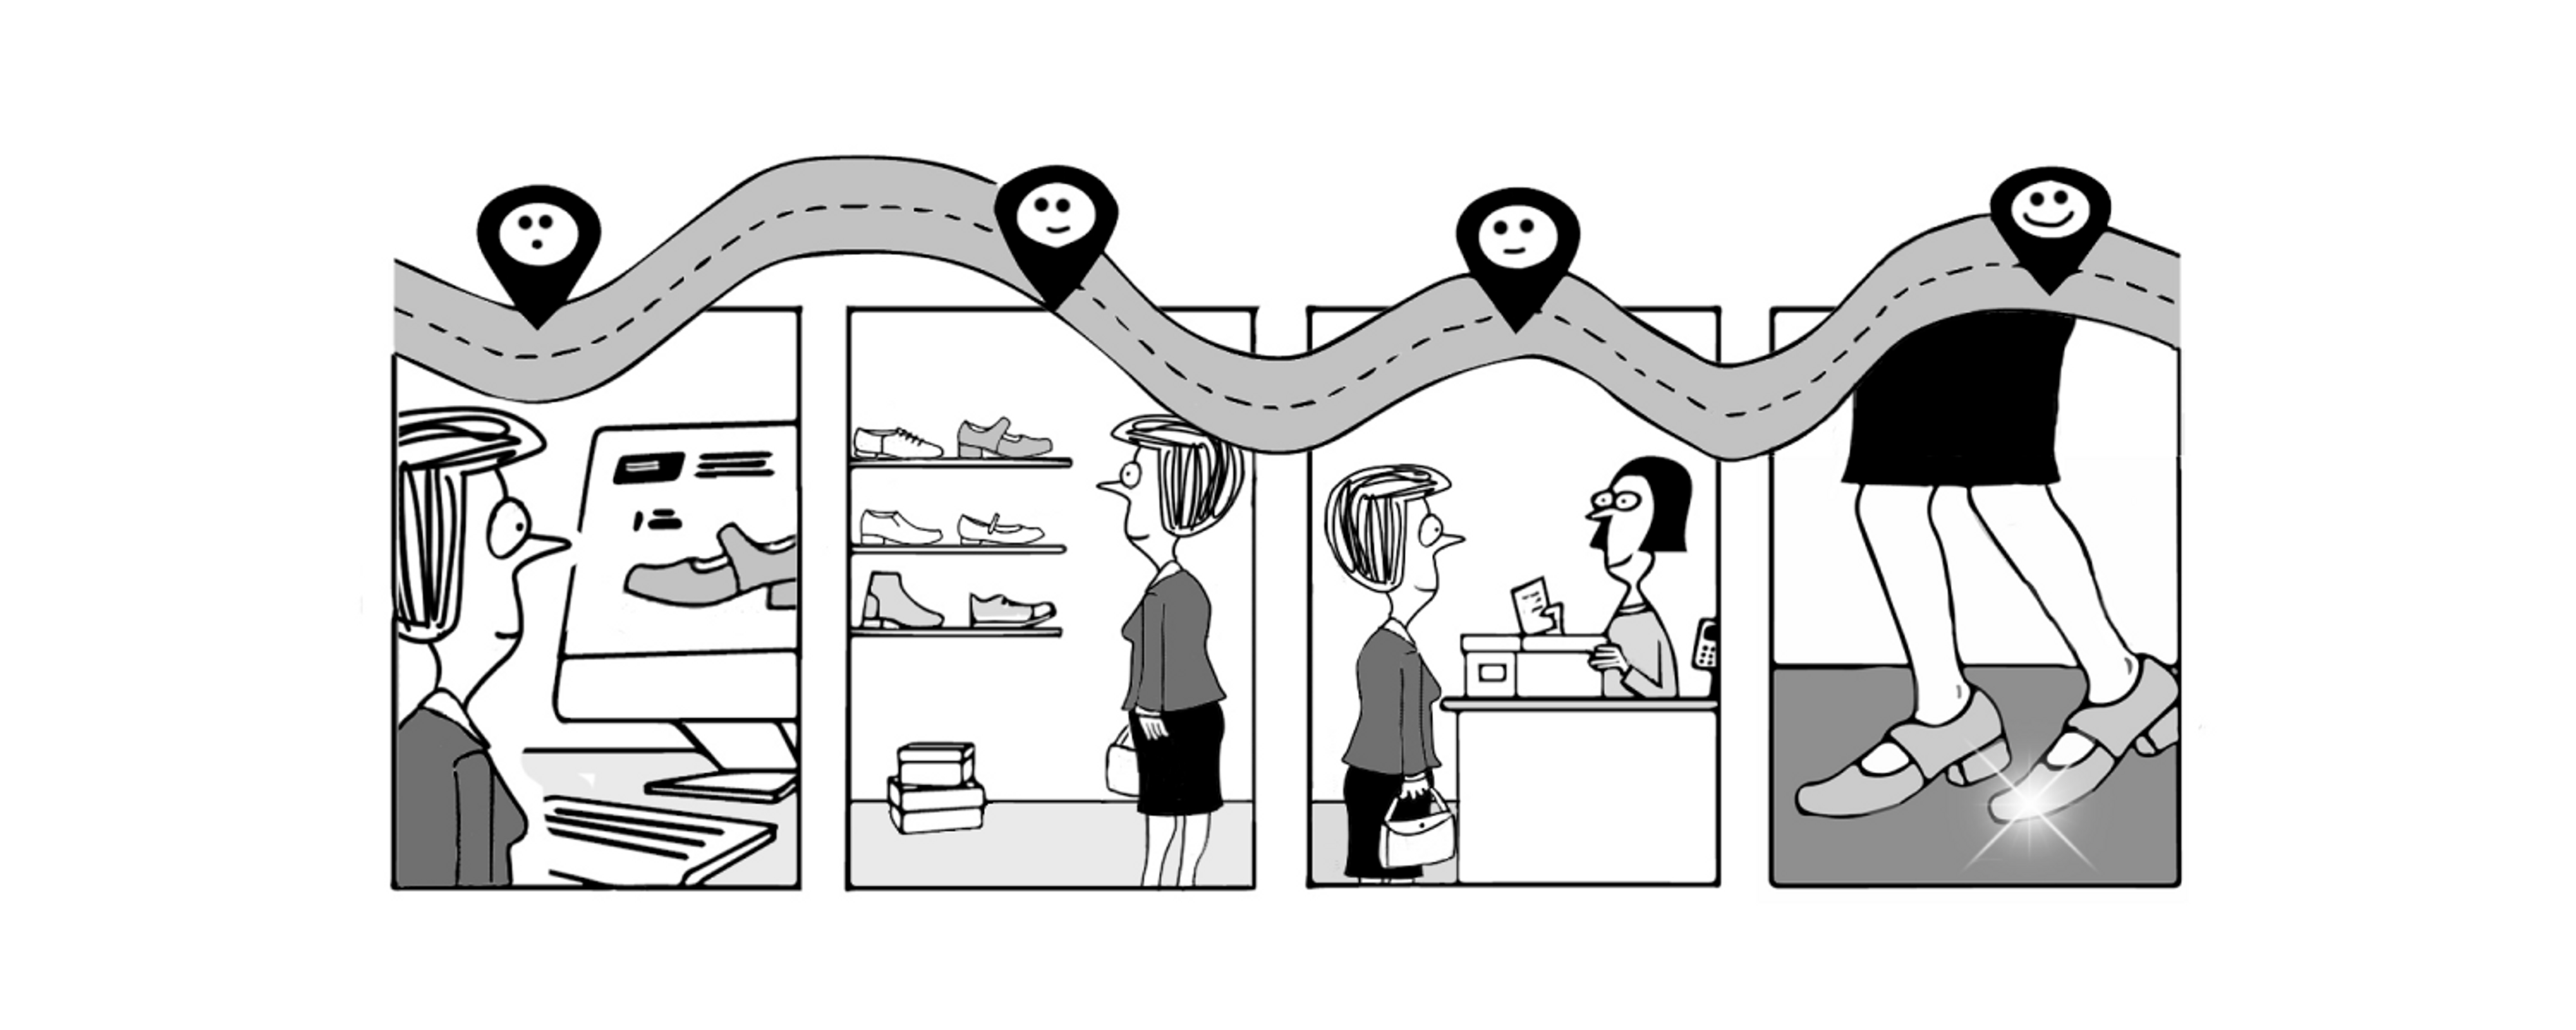 Cartoon of woman buying new shoes